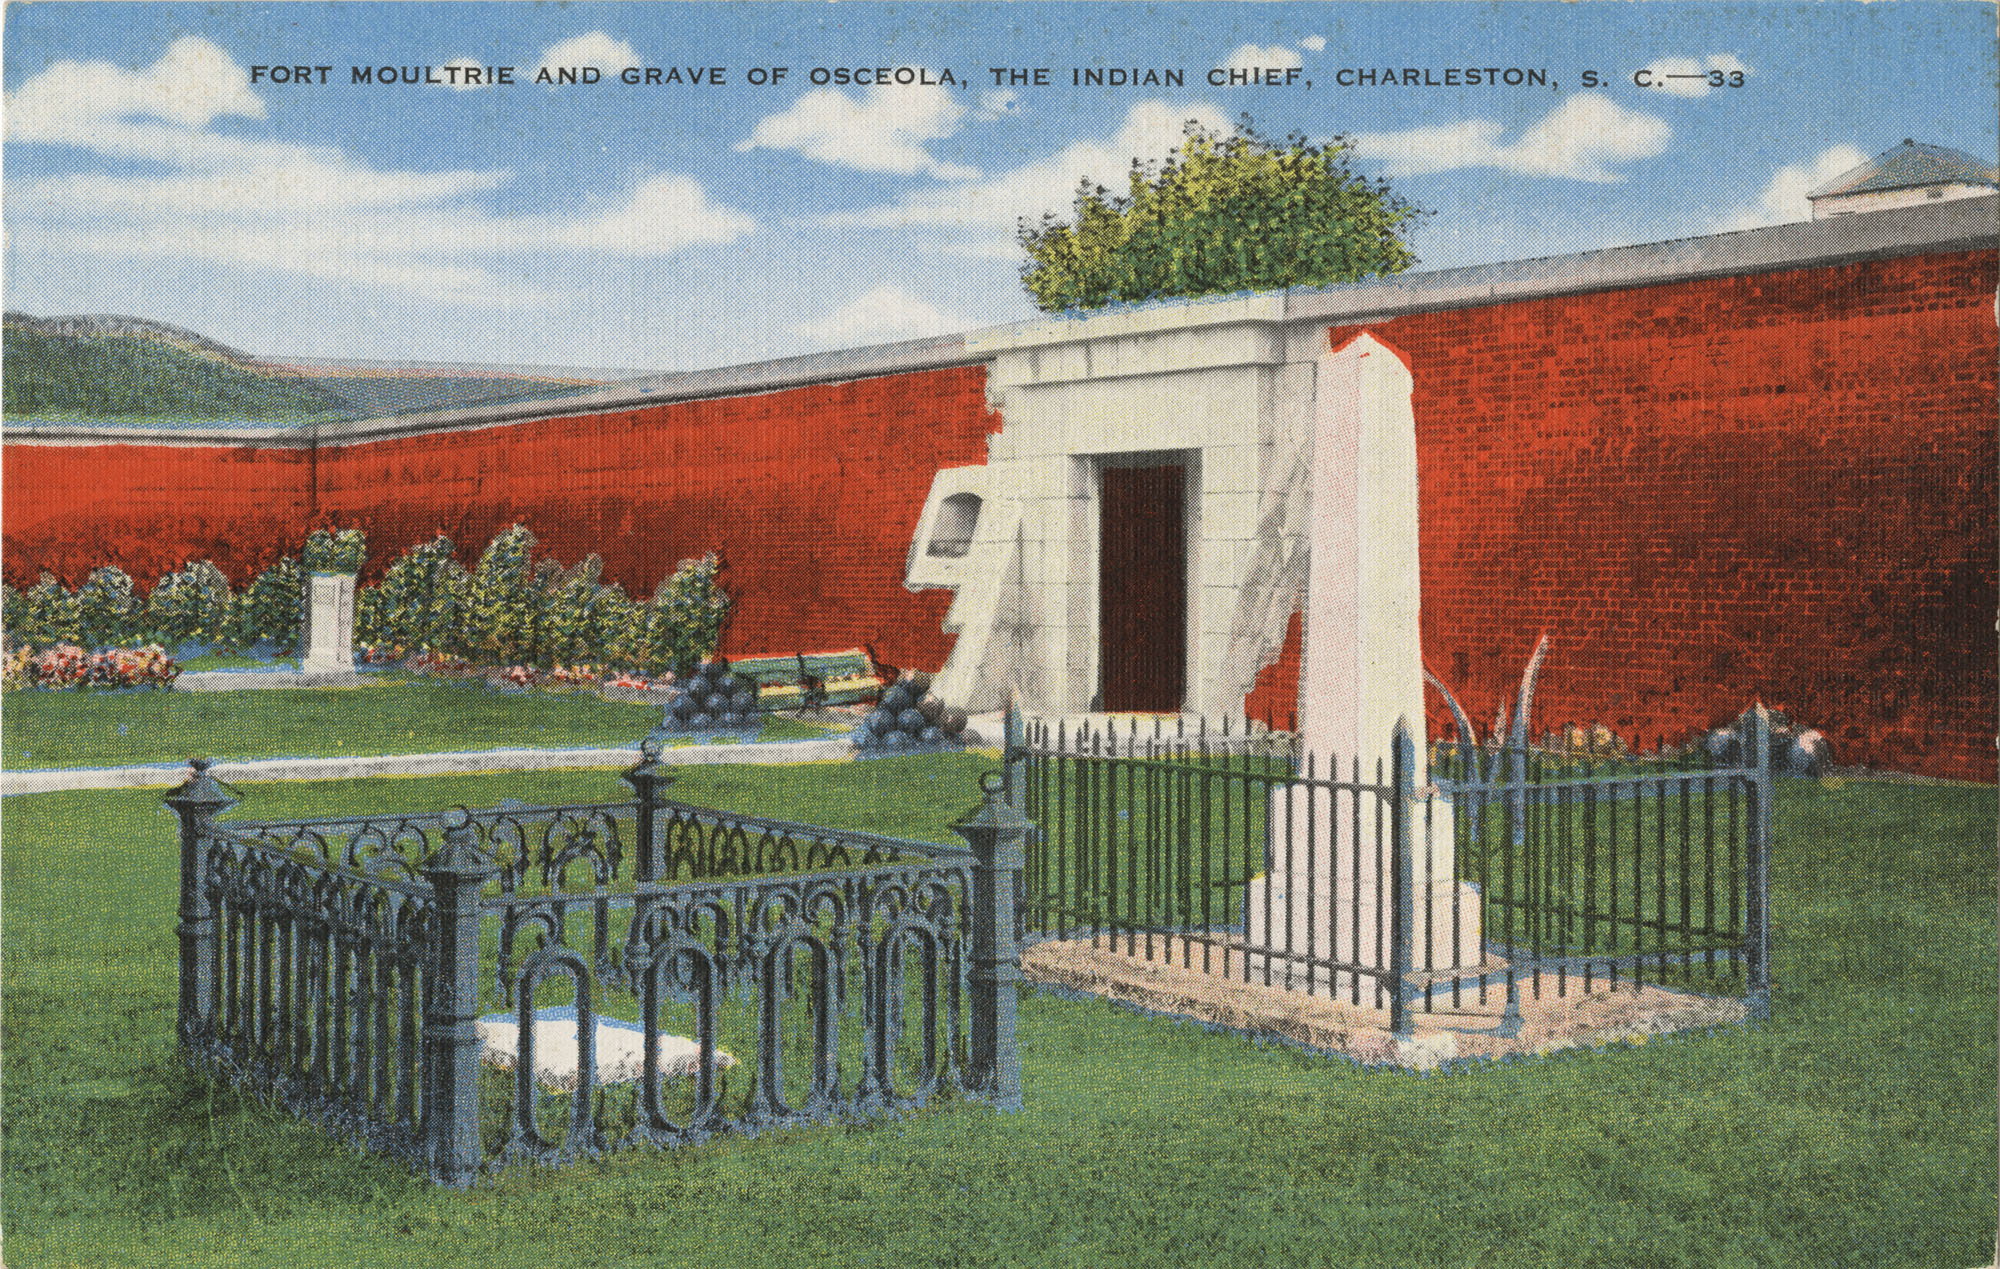 Fort Moultrie and Grave of Oceola, the Indian Chief, Charleston, S.C.